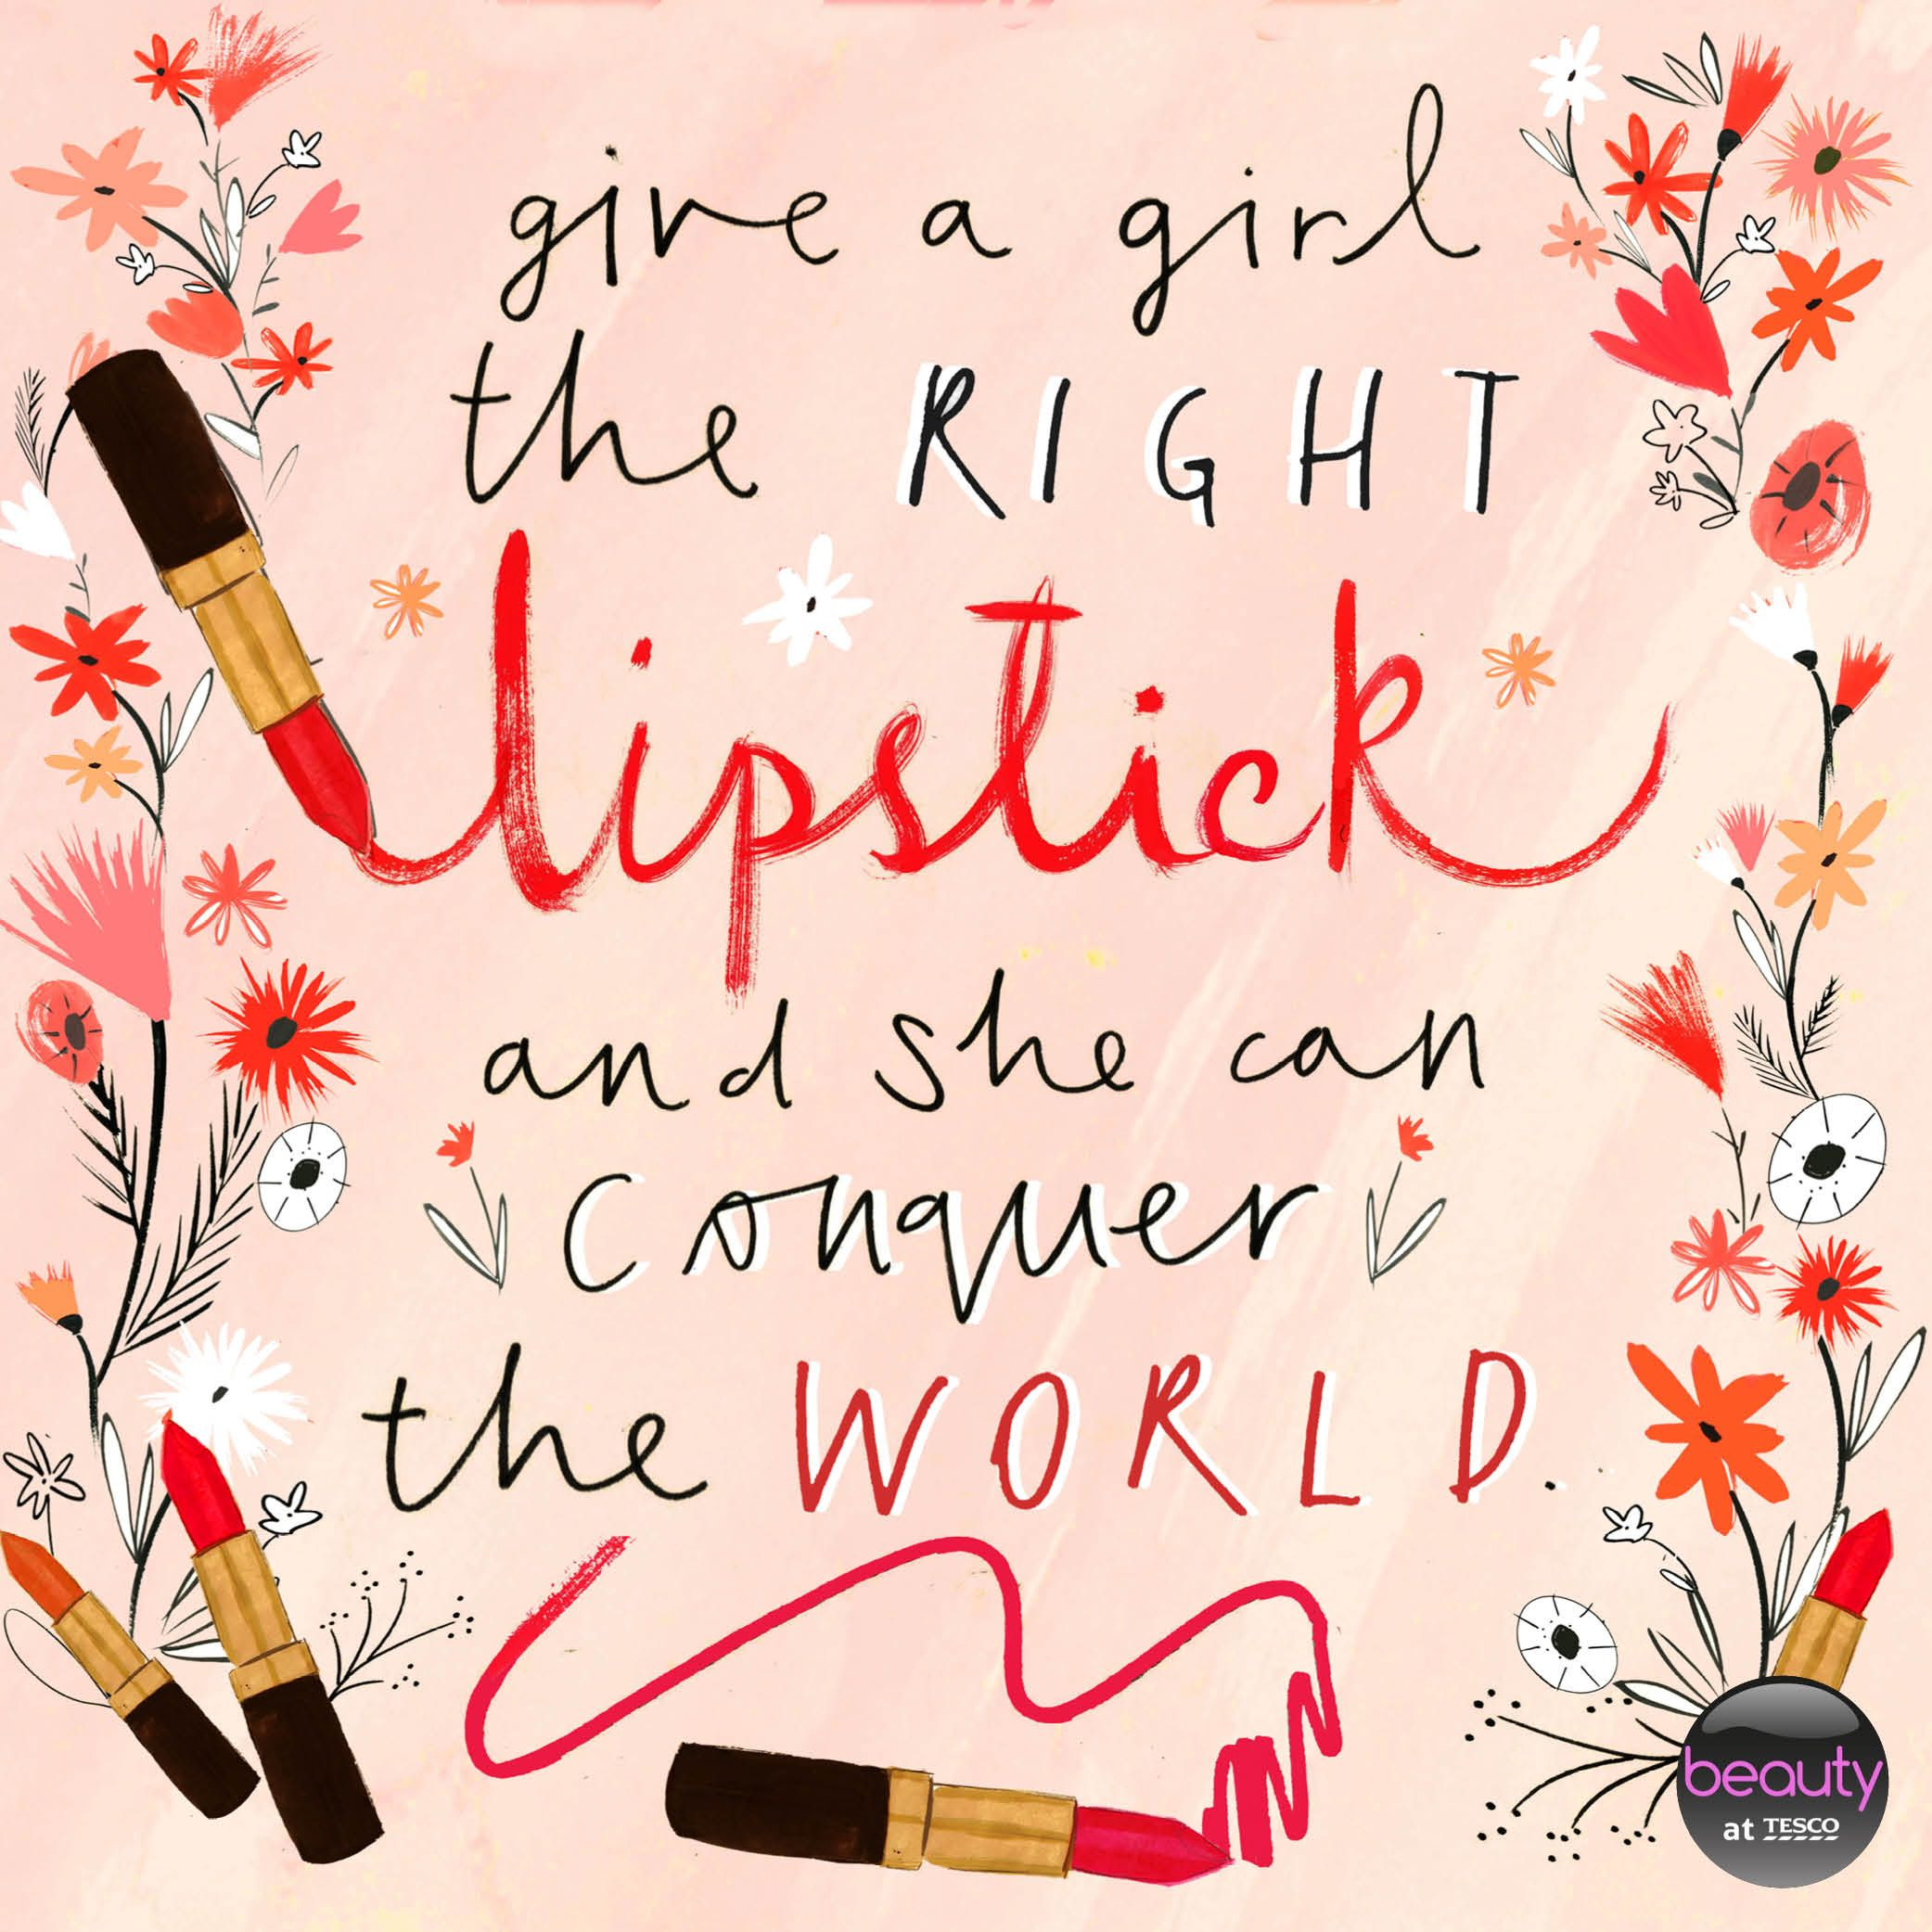 Maudjesstyling Give A Girl The Right Lipstick And She Can Conquer The World Beautyattesco Beautyquote Lipstick Quotes Makeup Quotes Lipsense